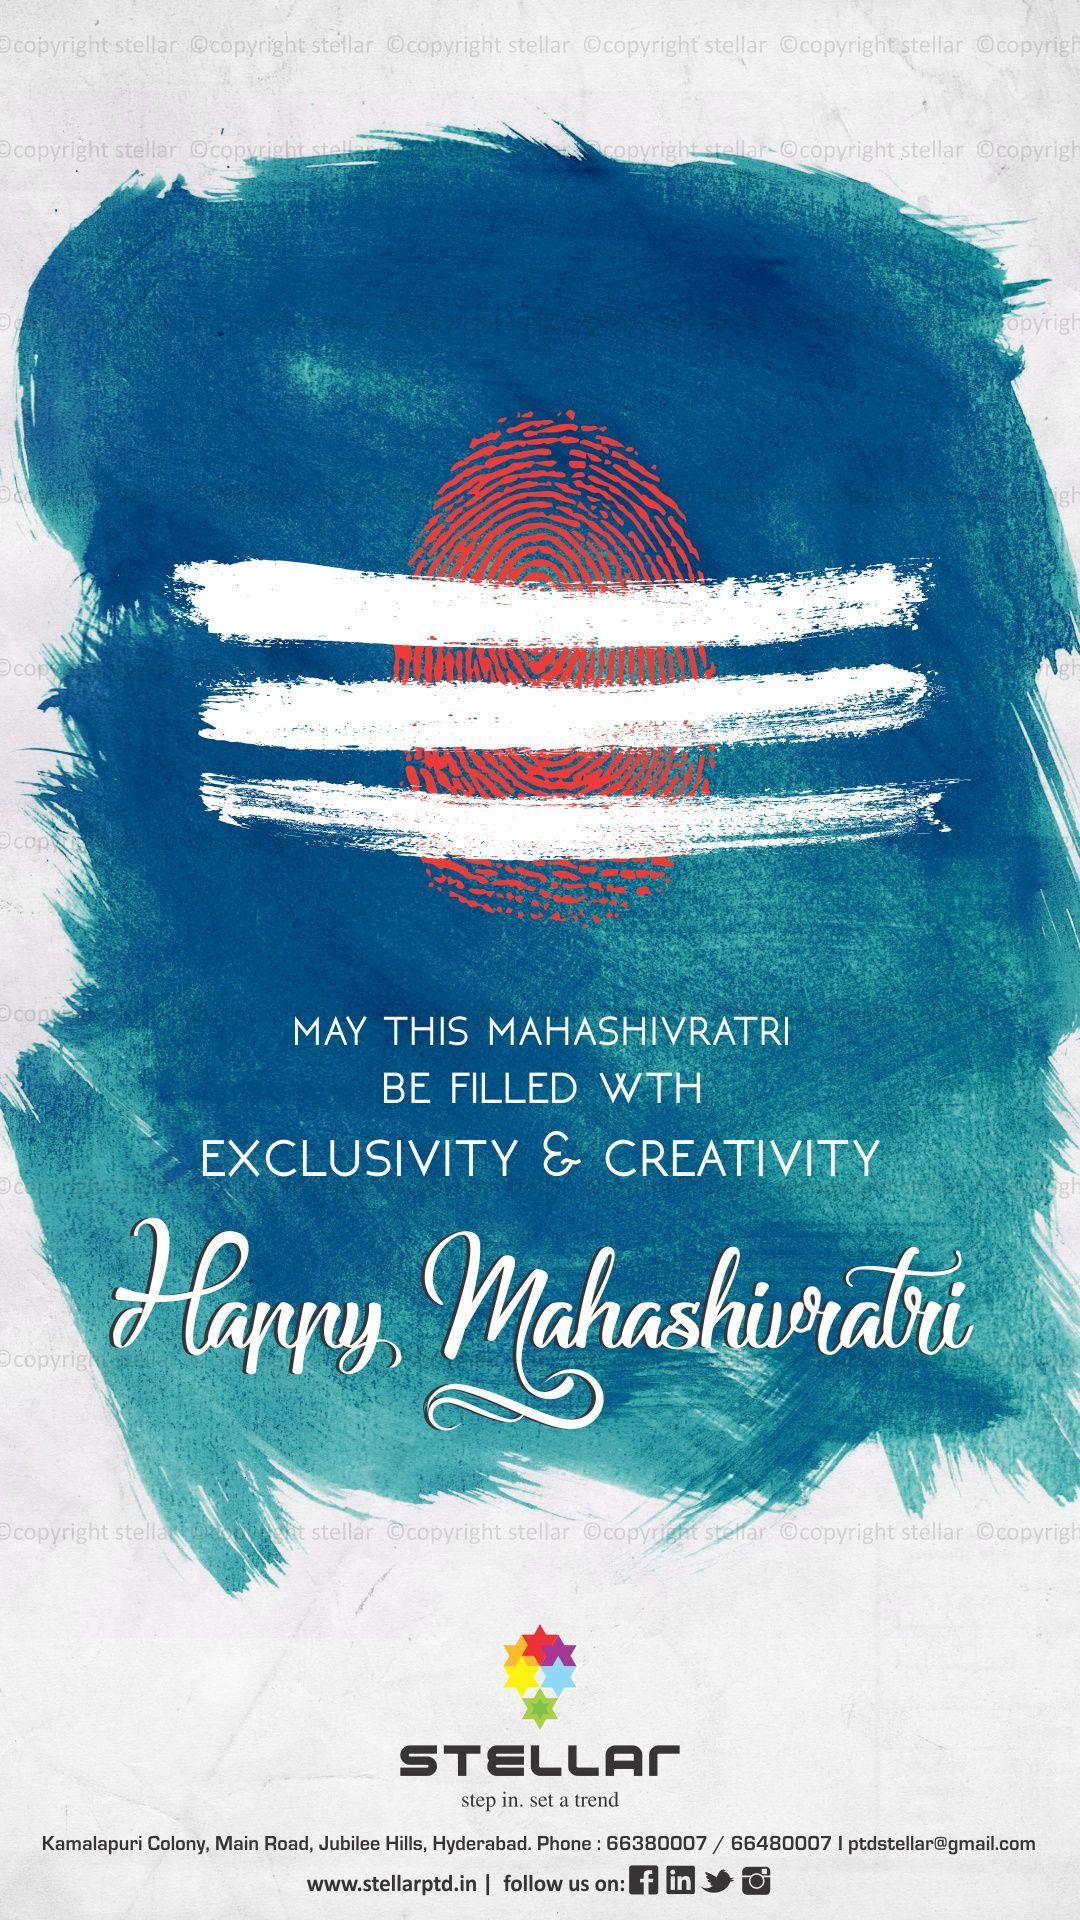 Stellar wishes you all a very happy#Mahashivratri2017#festival#India ...